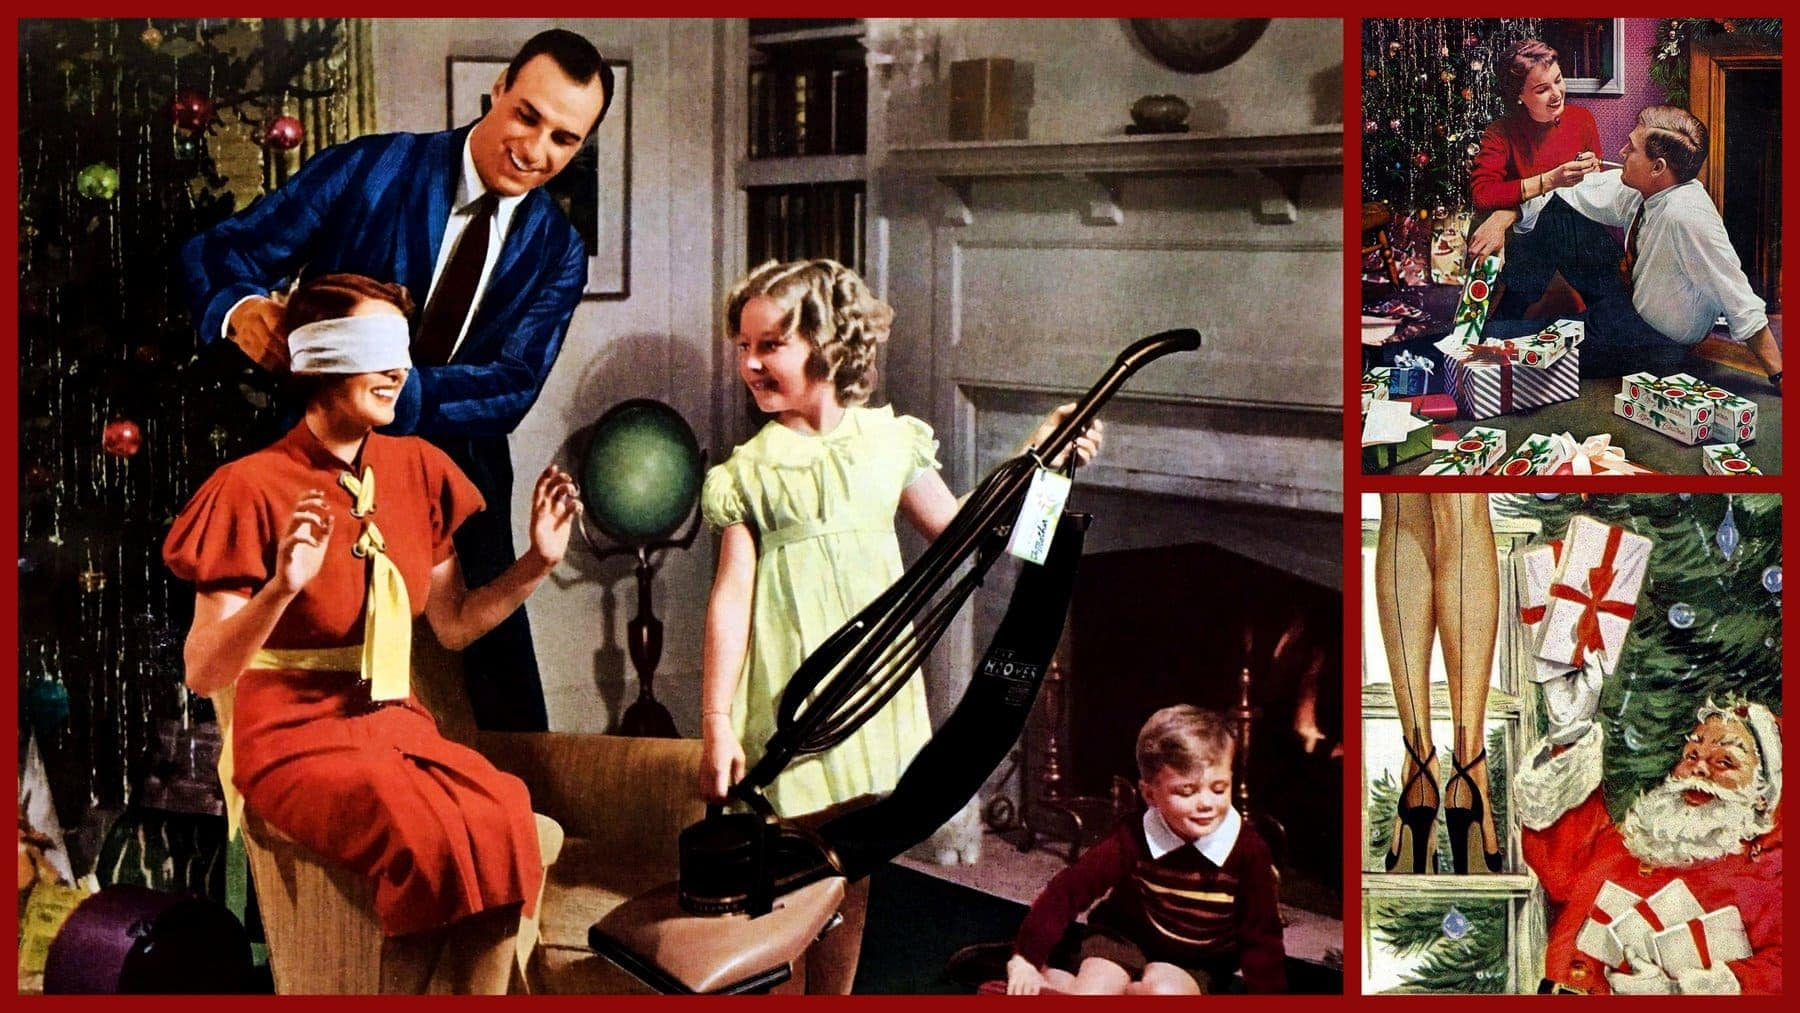 Vintage Bad Bad Vintage Christmas Ads 20 Retro Holiday Sales Pitches That You